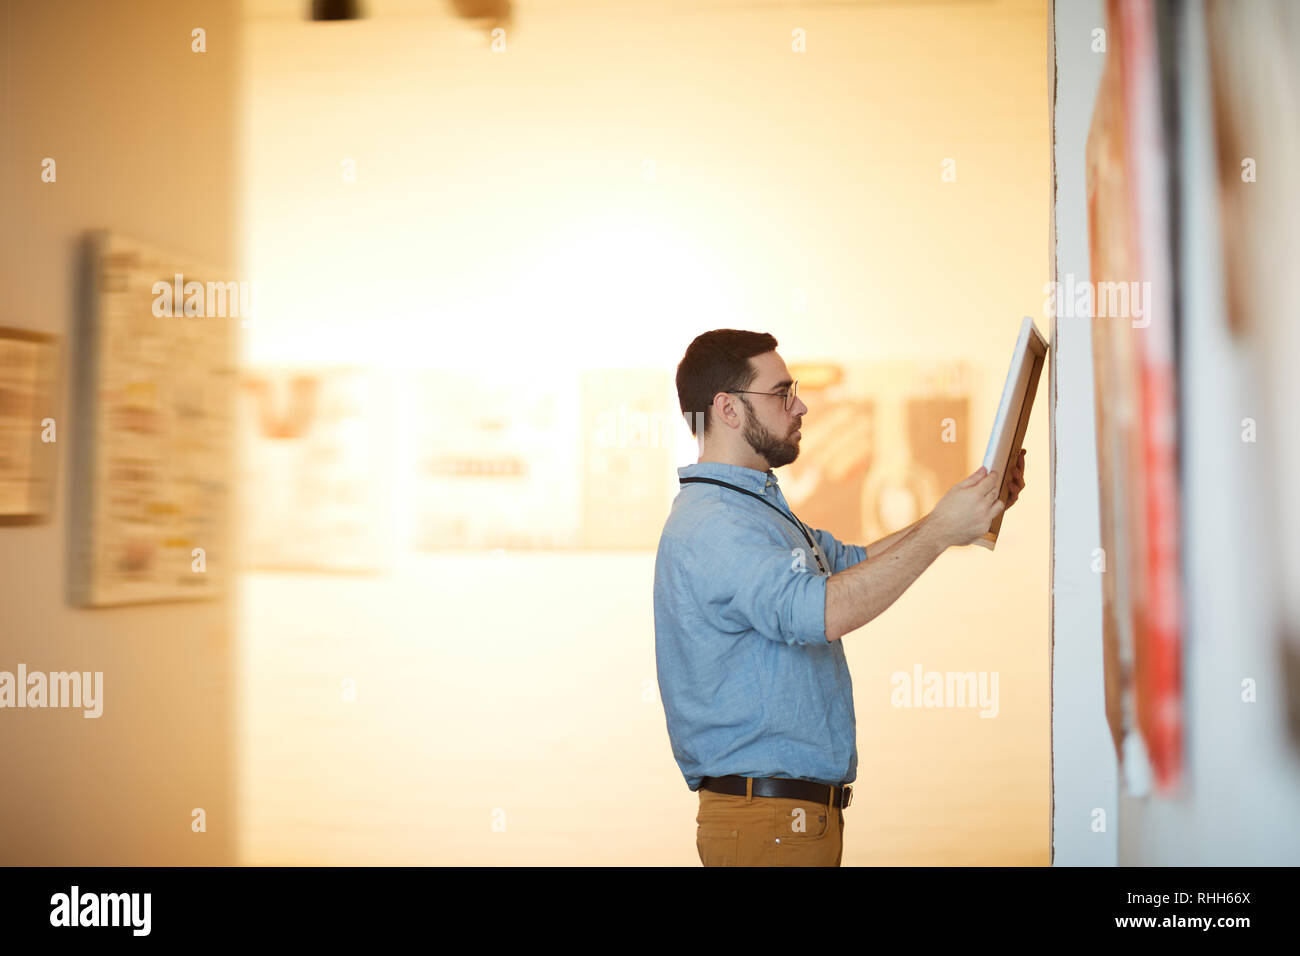 Man Appraising Pictures in Gallery Stock Photo